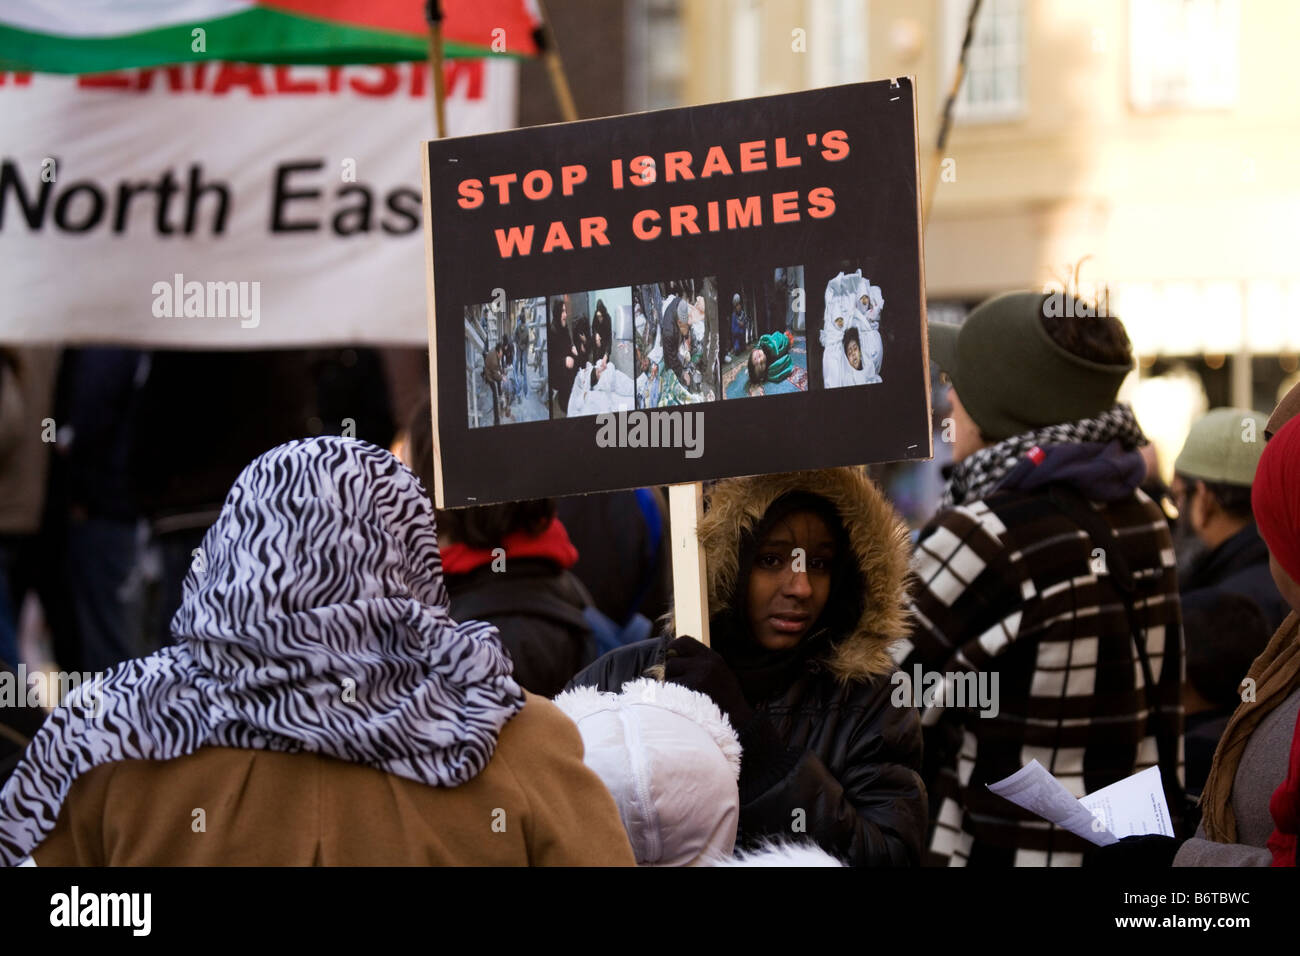 A placard at a demonstration in central Newcastle England says 'Stop Israel's War Crimes'. - Stock Image